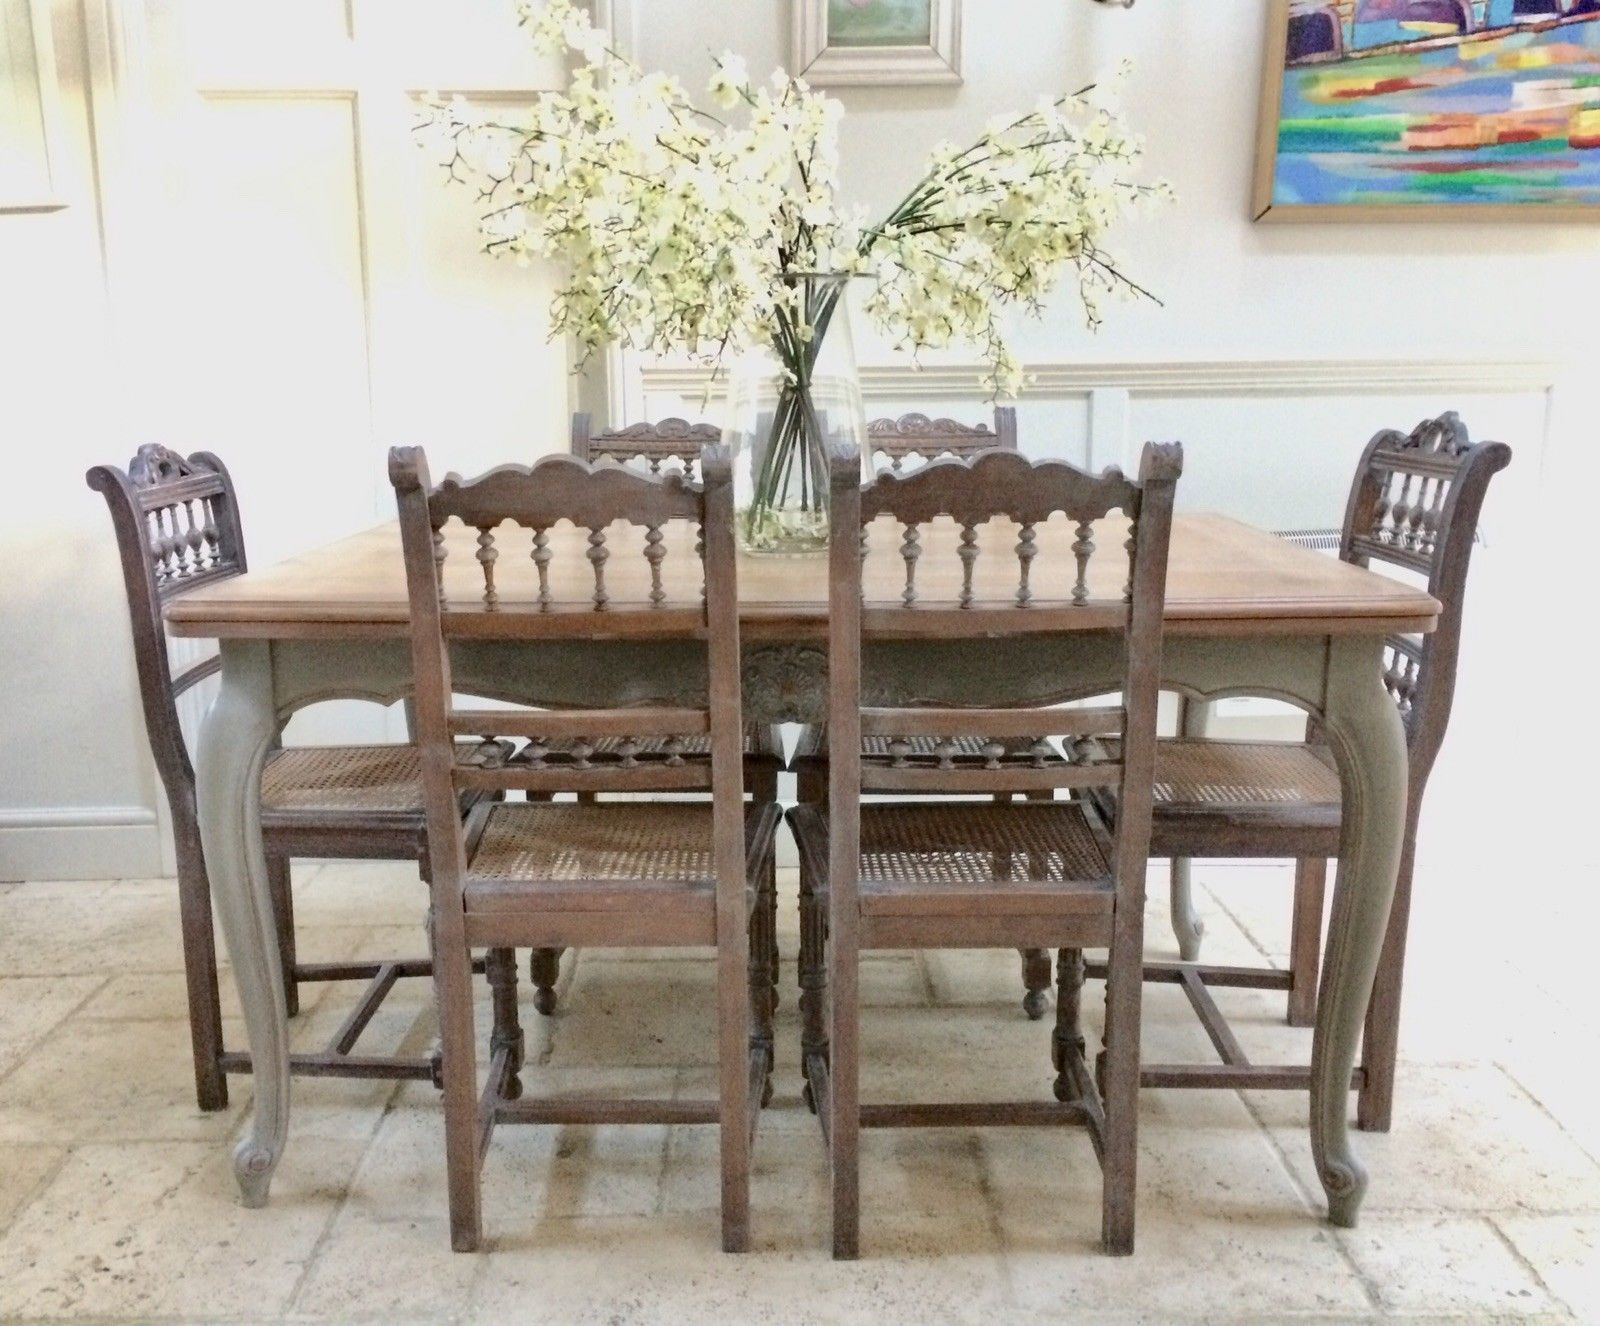 Tremendous Vintage Painted French Limed Oak Extending Dining Table 8 Victorian Chairs Inzonedesignstudio Interior Chair Design Inzonedesignstudiocom